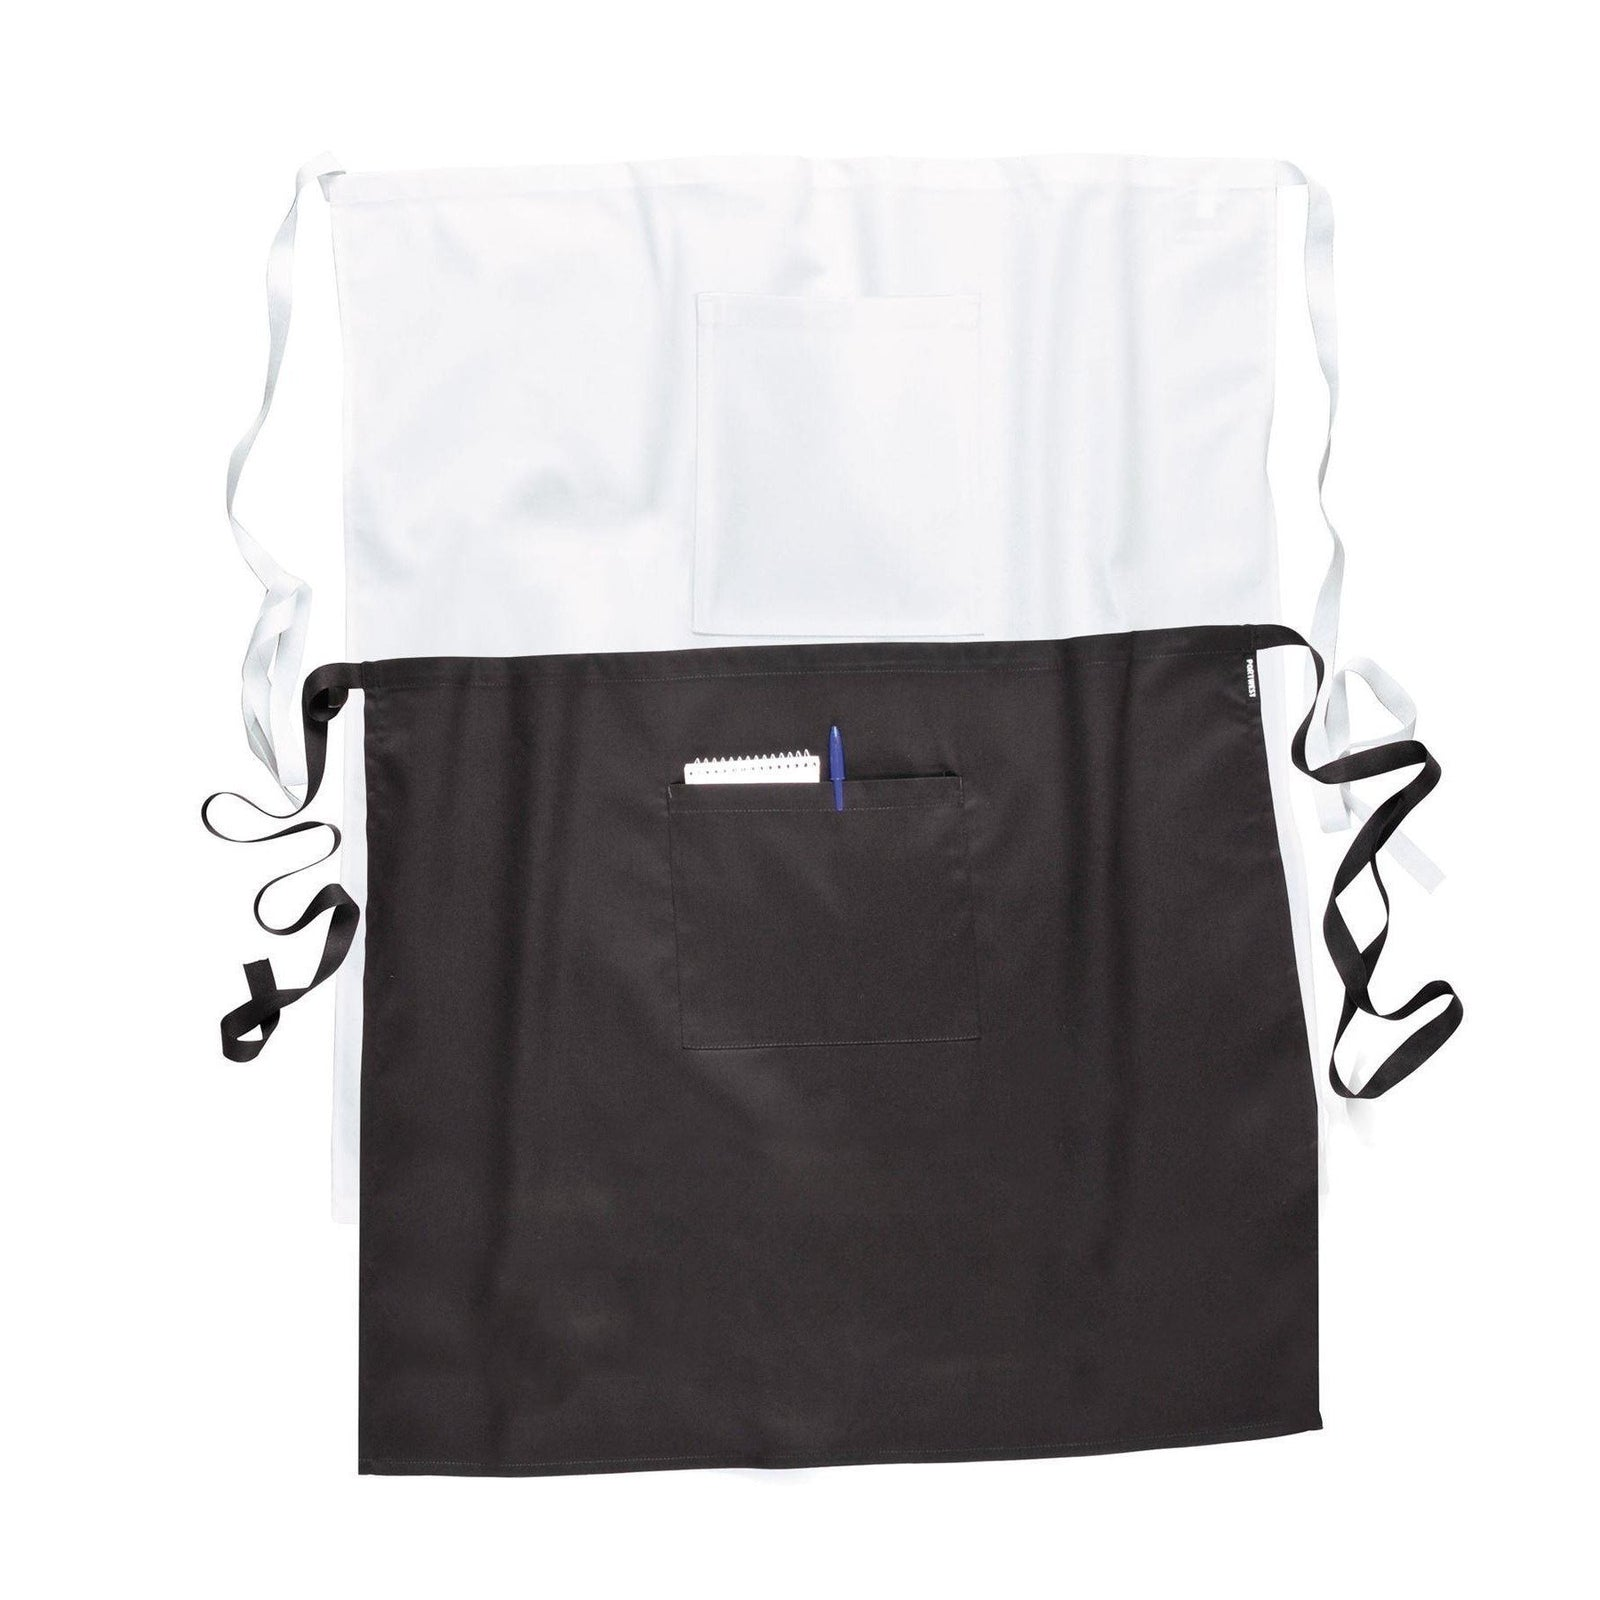 Portwest Waist Apron 120 S795 - reid outdoors